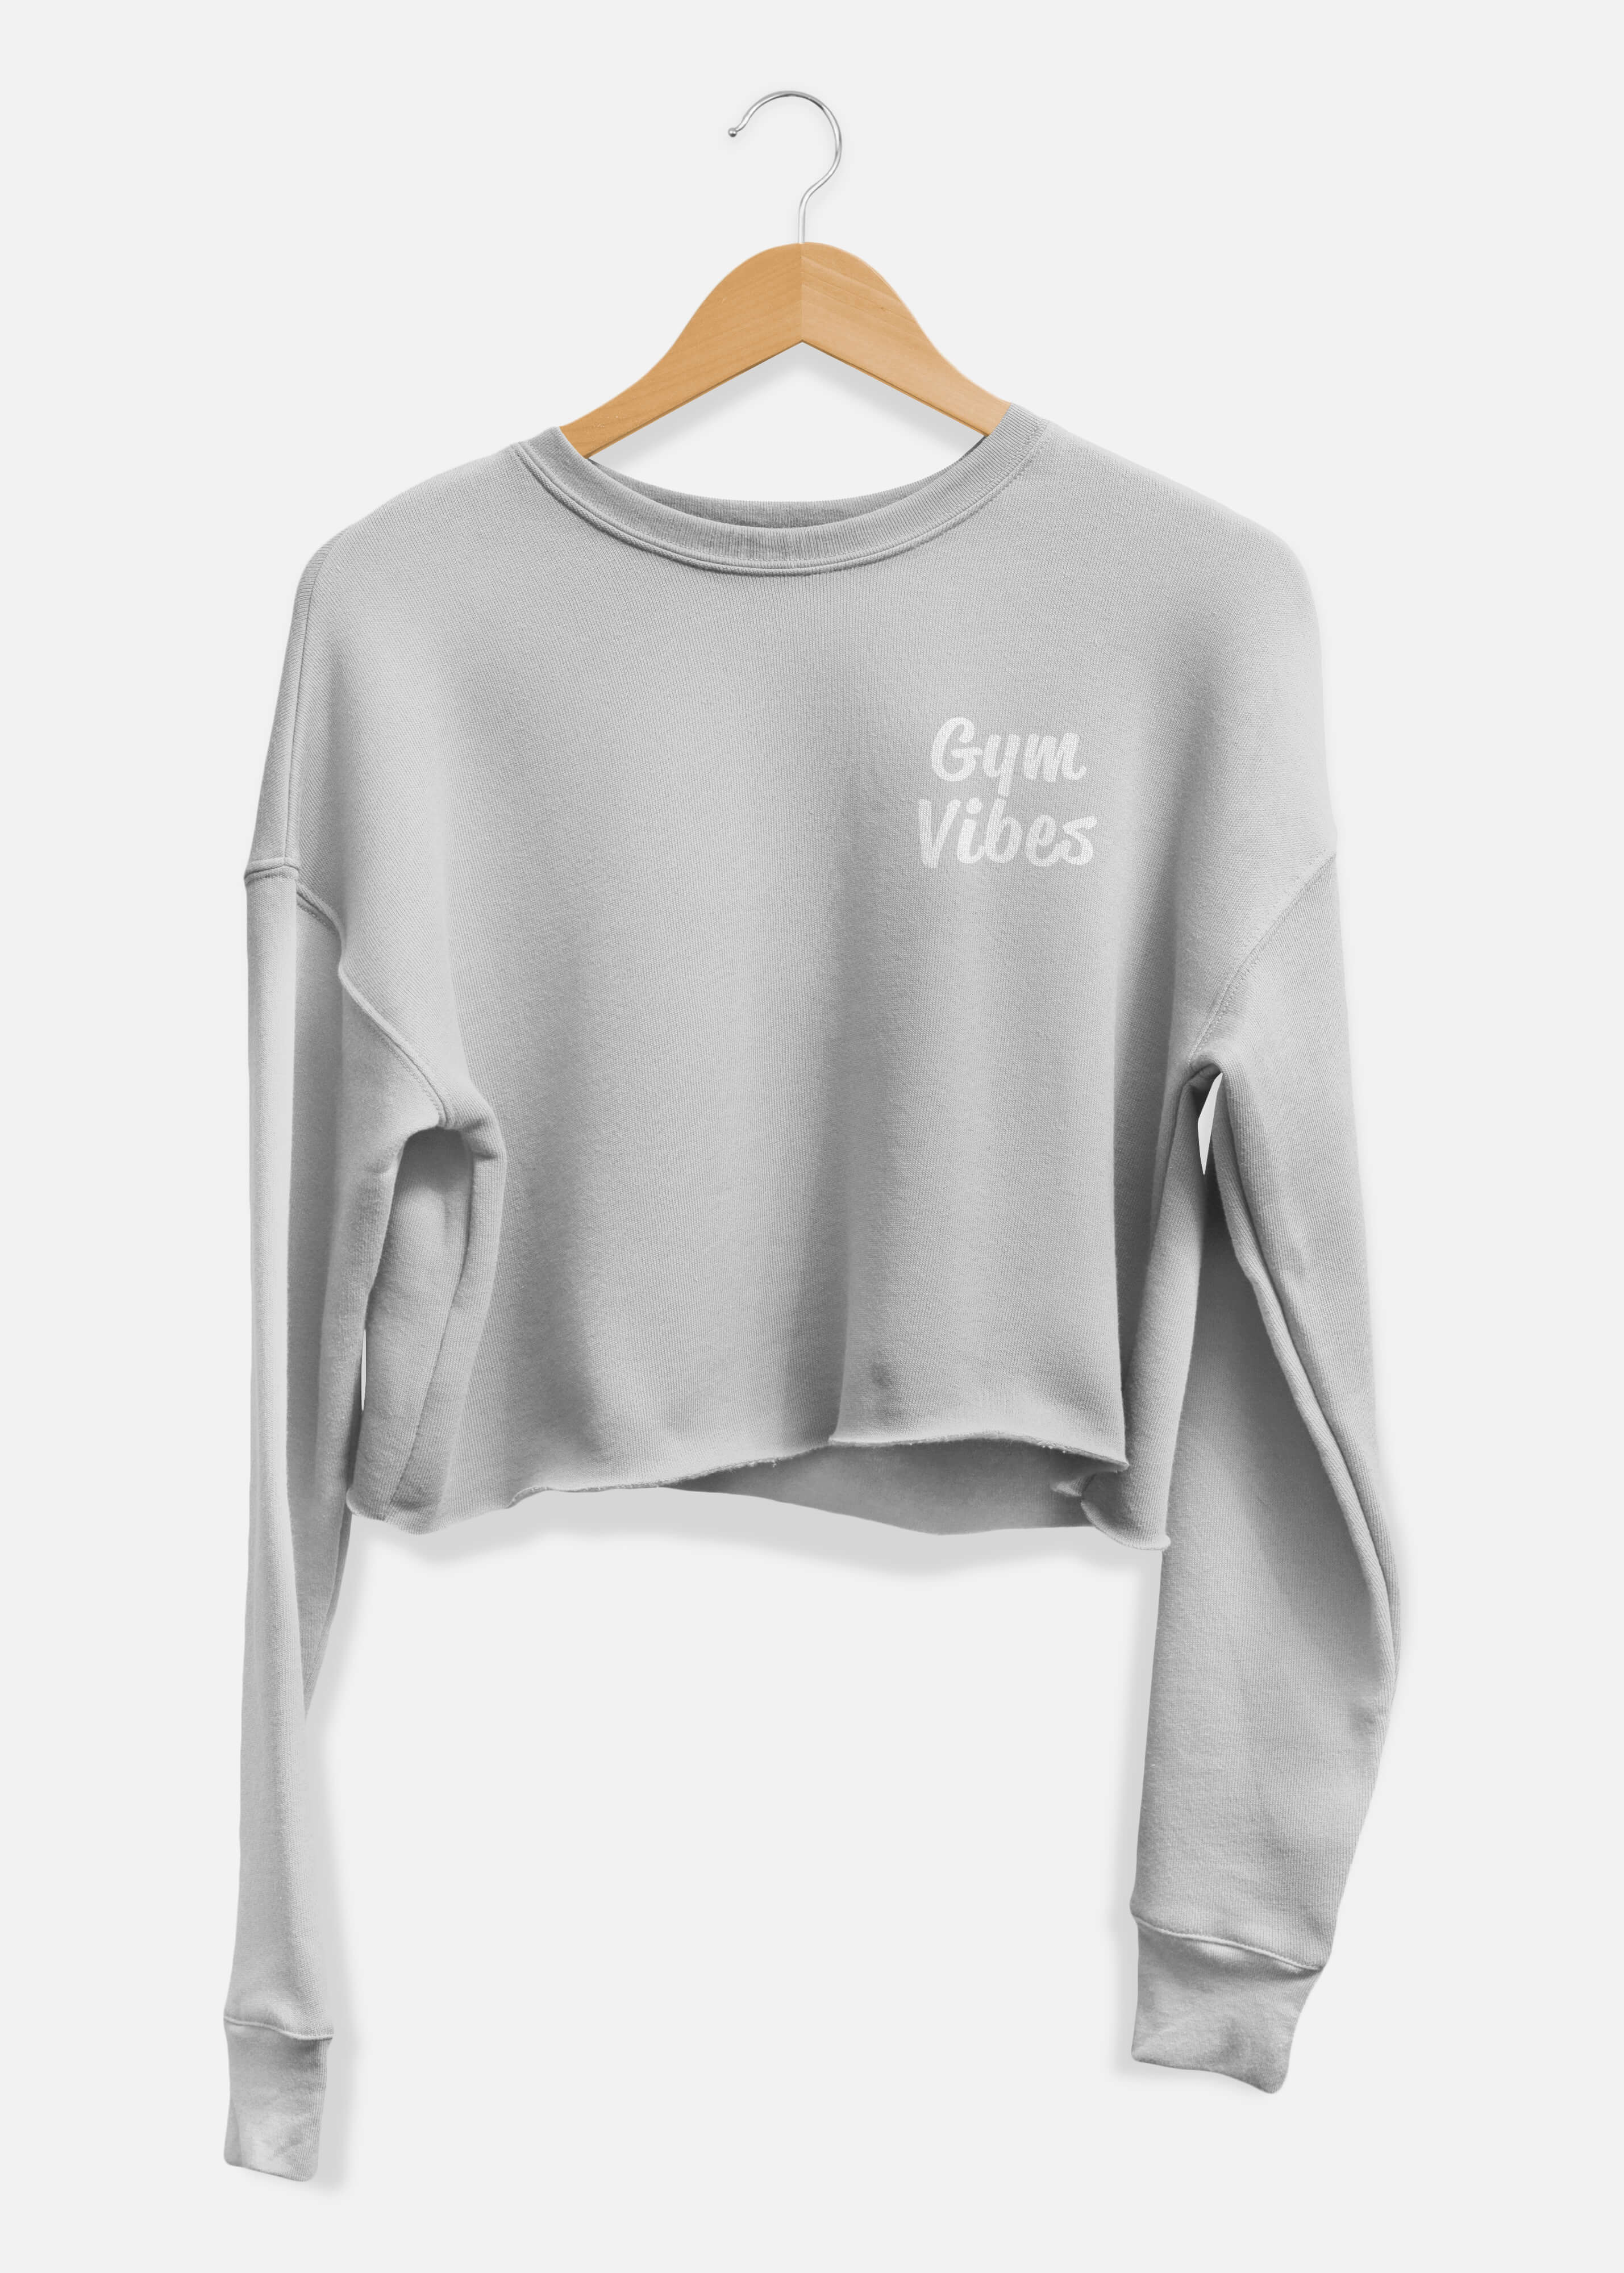 Gym Vibes Cropped Sweater